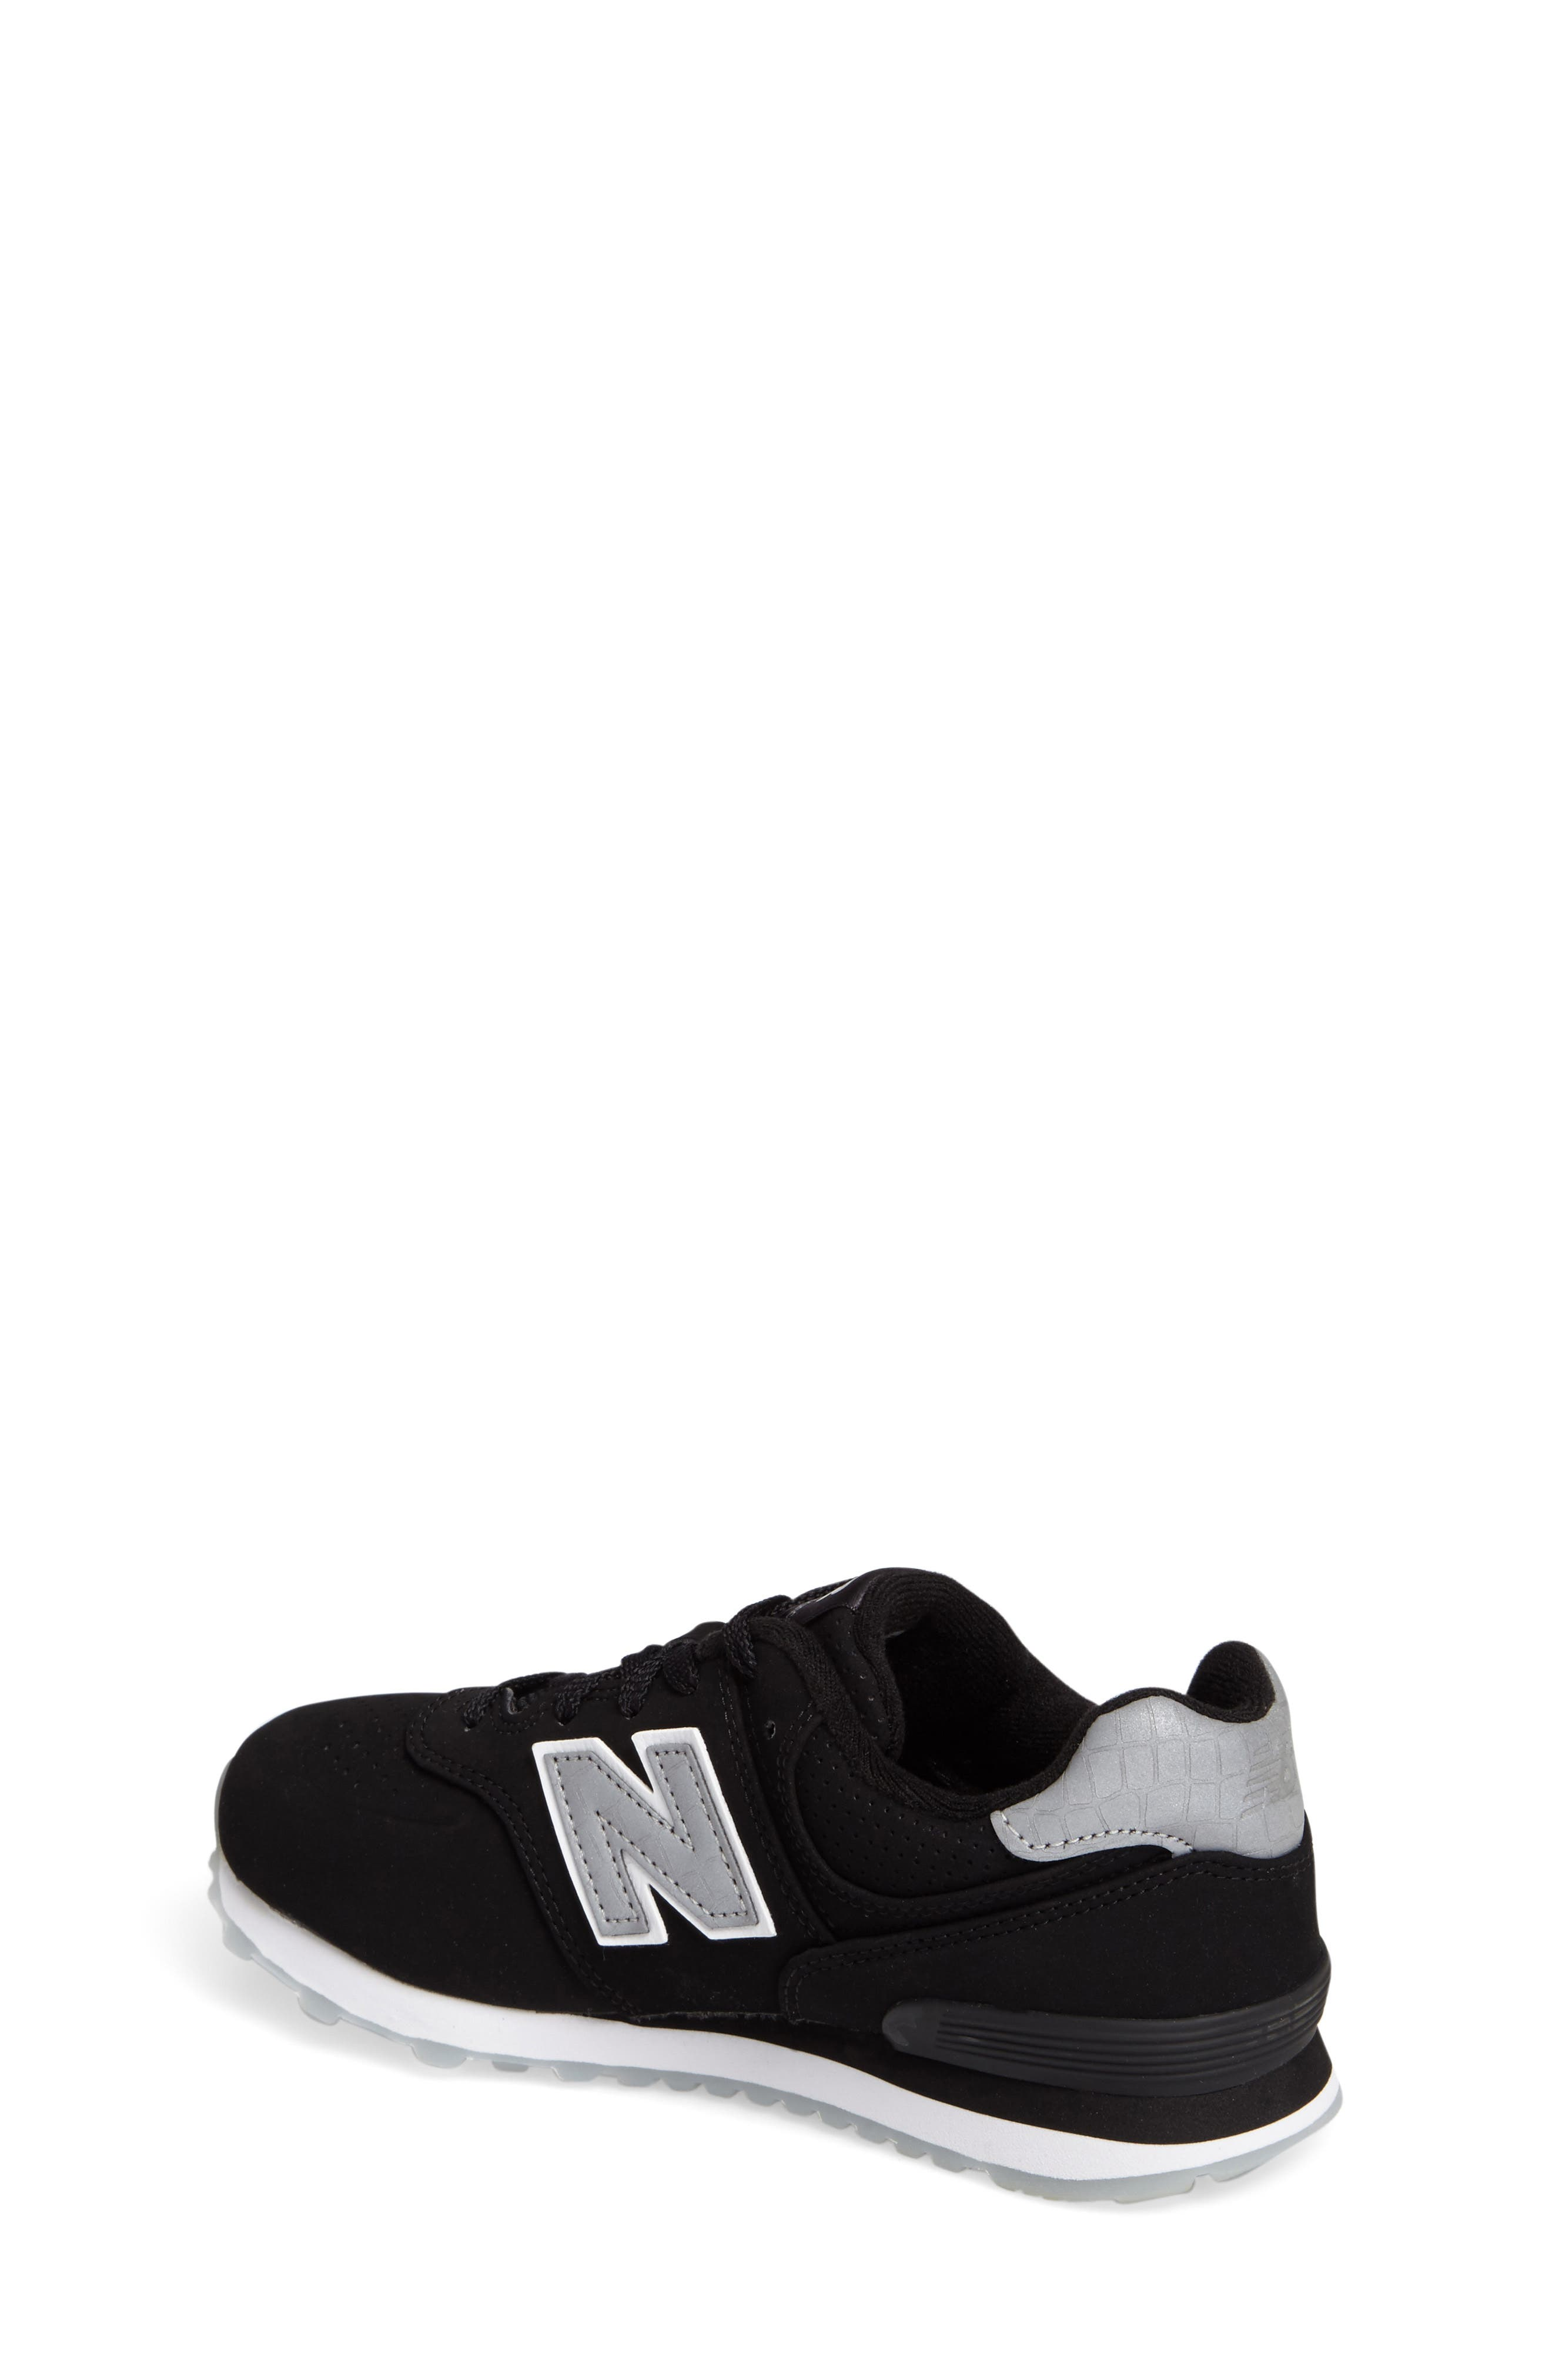 Alternate Image 2  - New Balance 574 Core Plus Sneaker (Baby, Walker, Toddler, Little Kid, Big Kid)